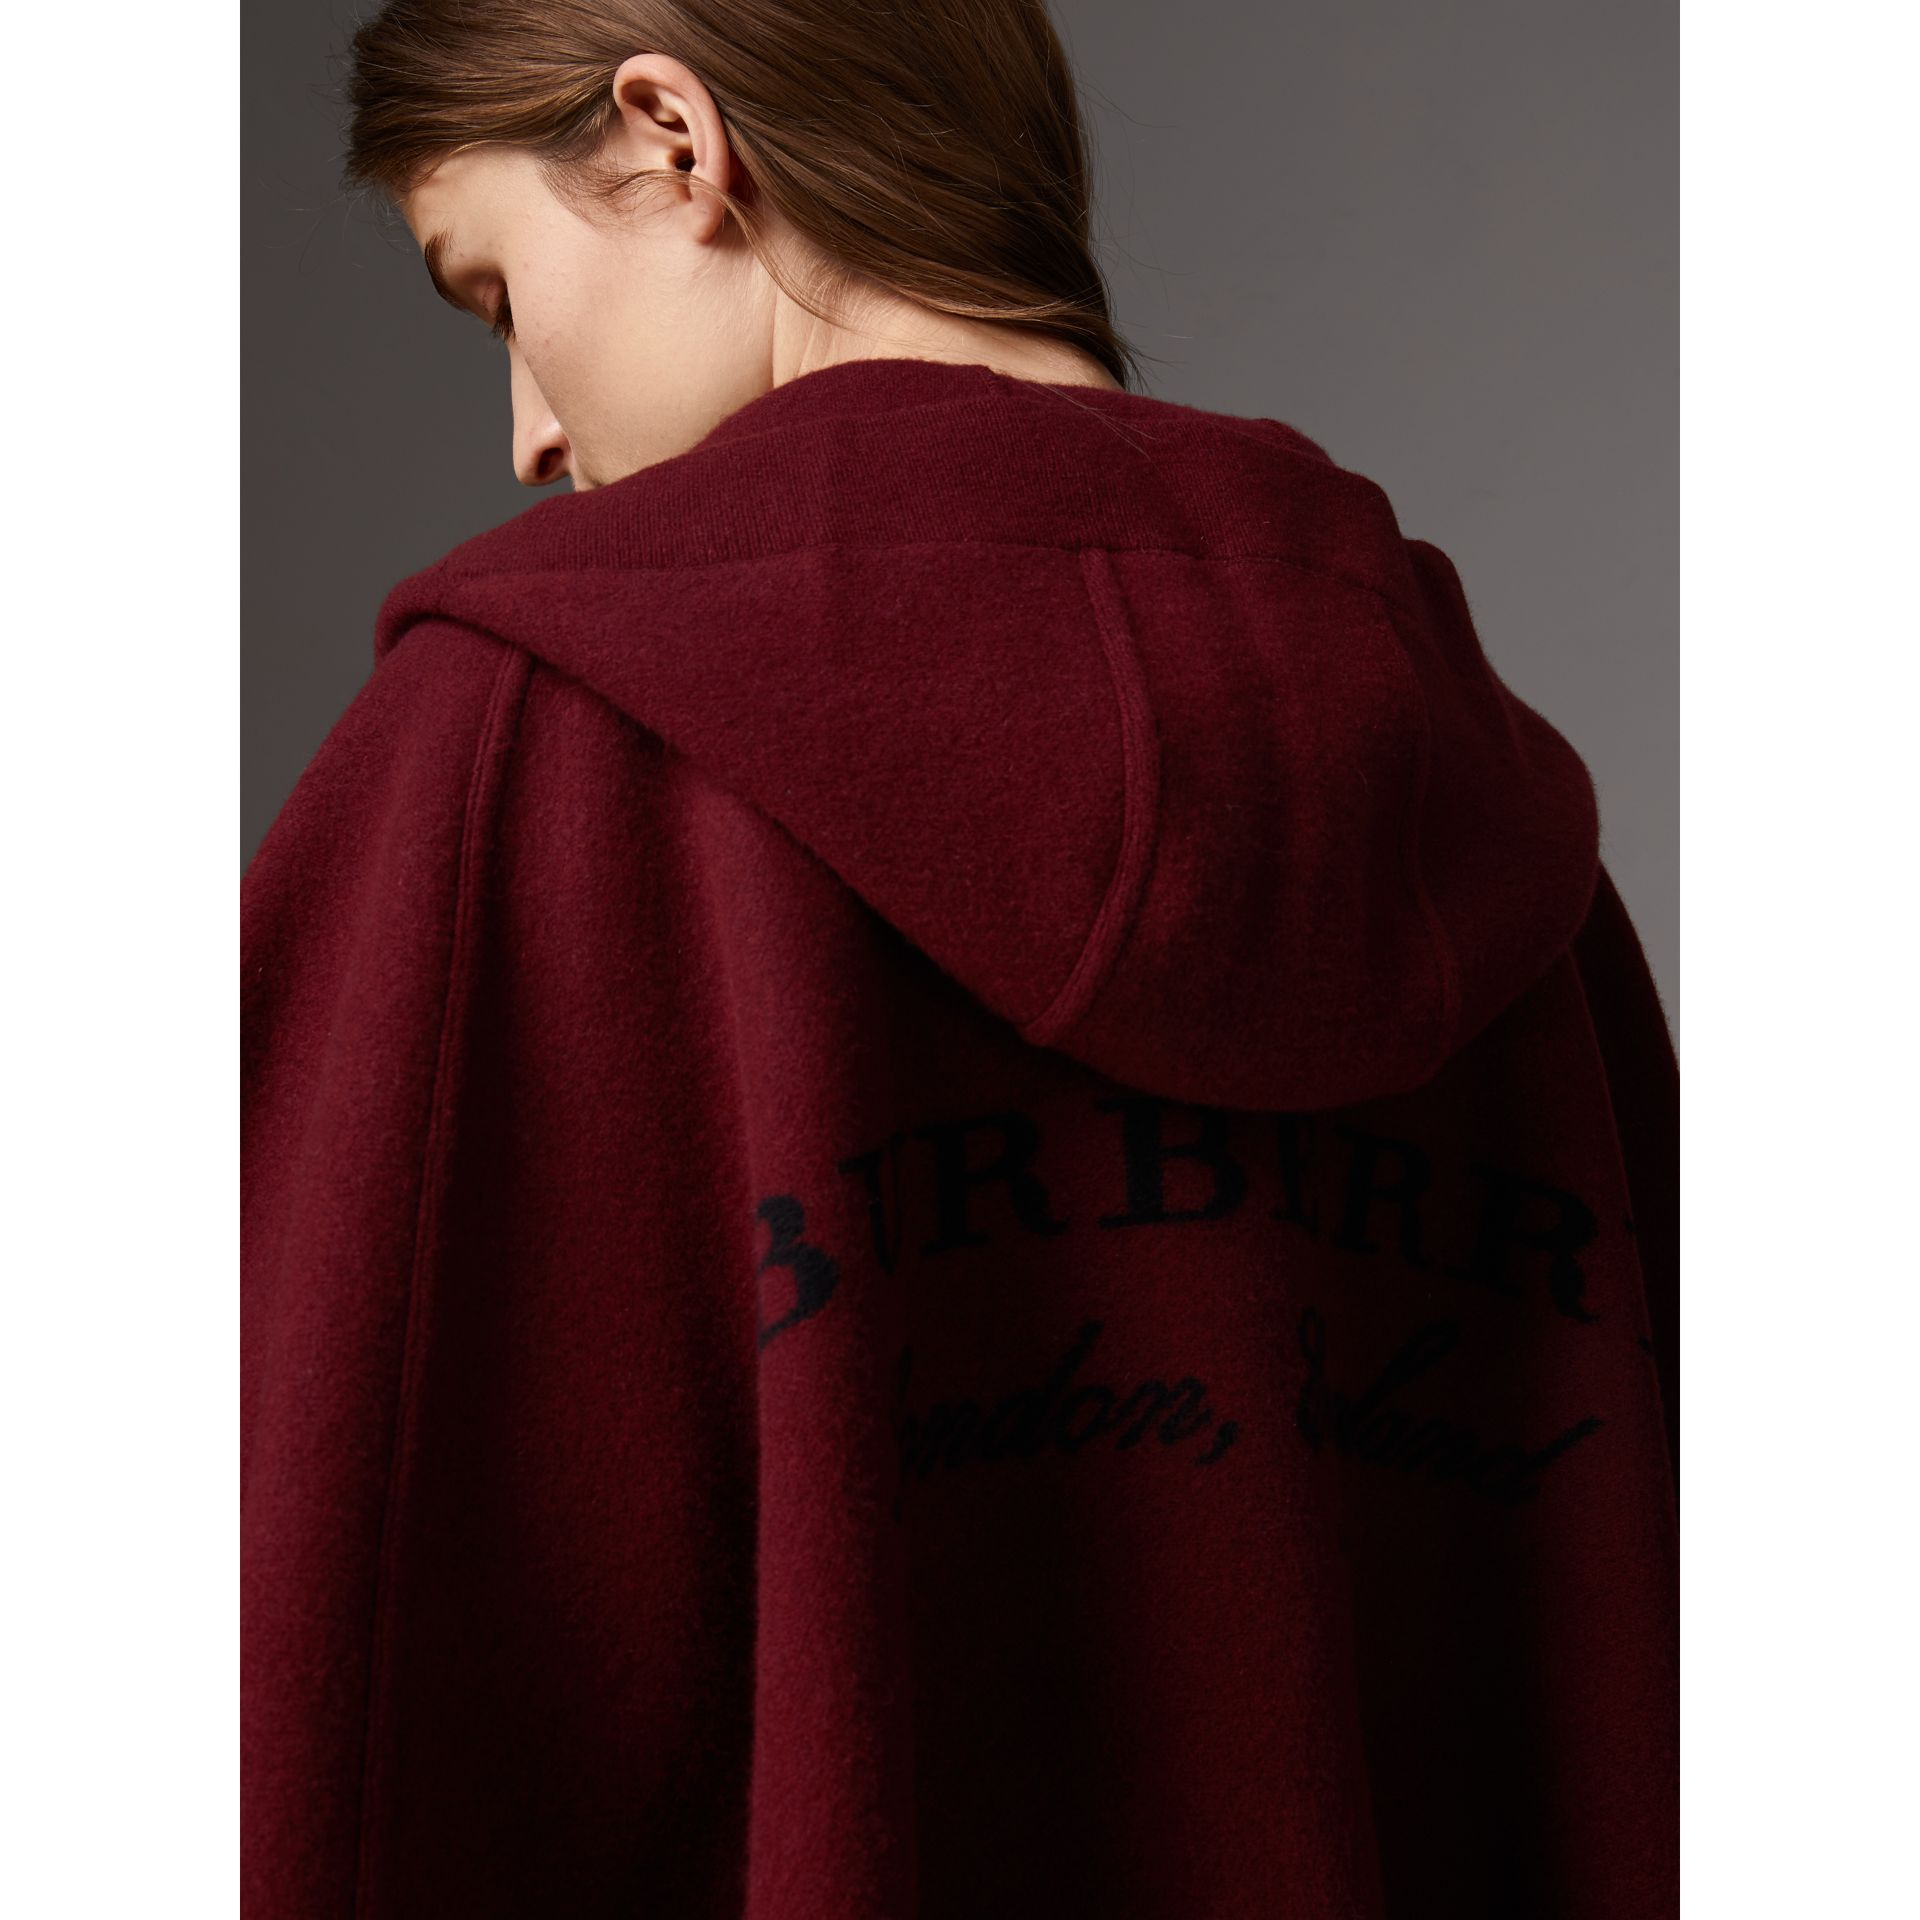 Wool Cashmere Blend Hooded Poncho in Deep Red - Women | Burberry - gallery image 1